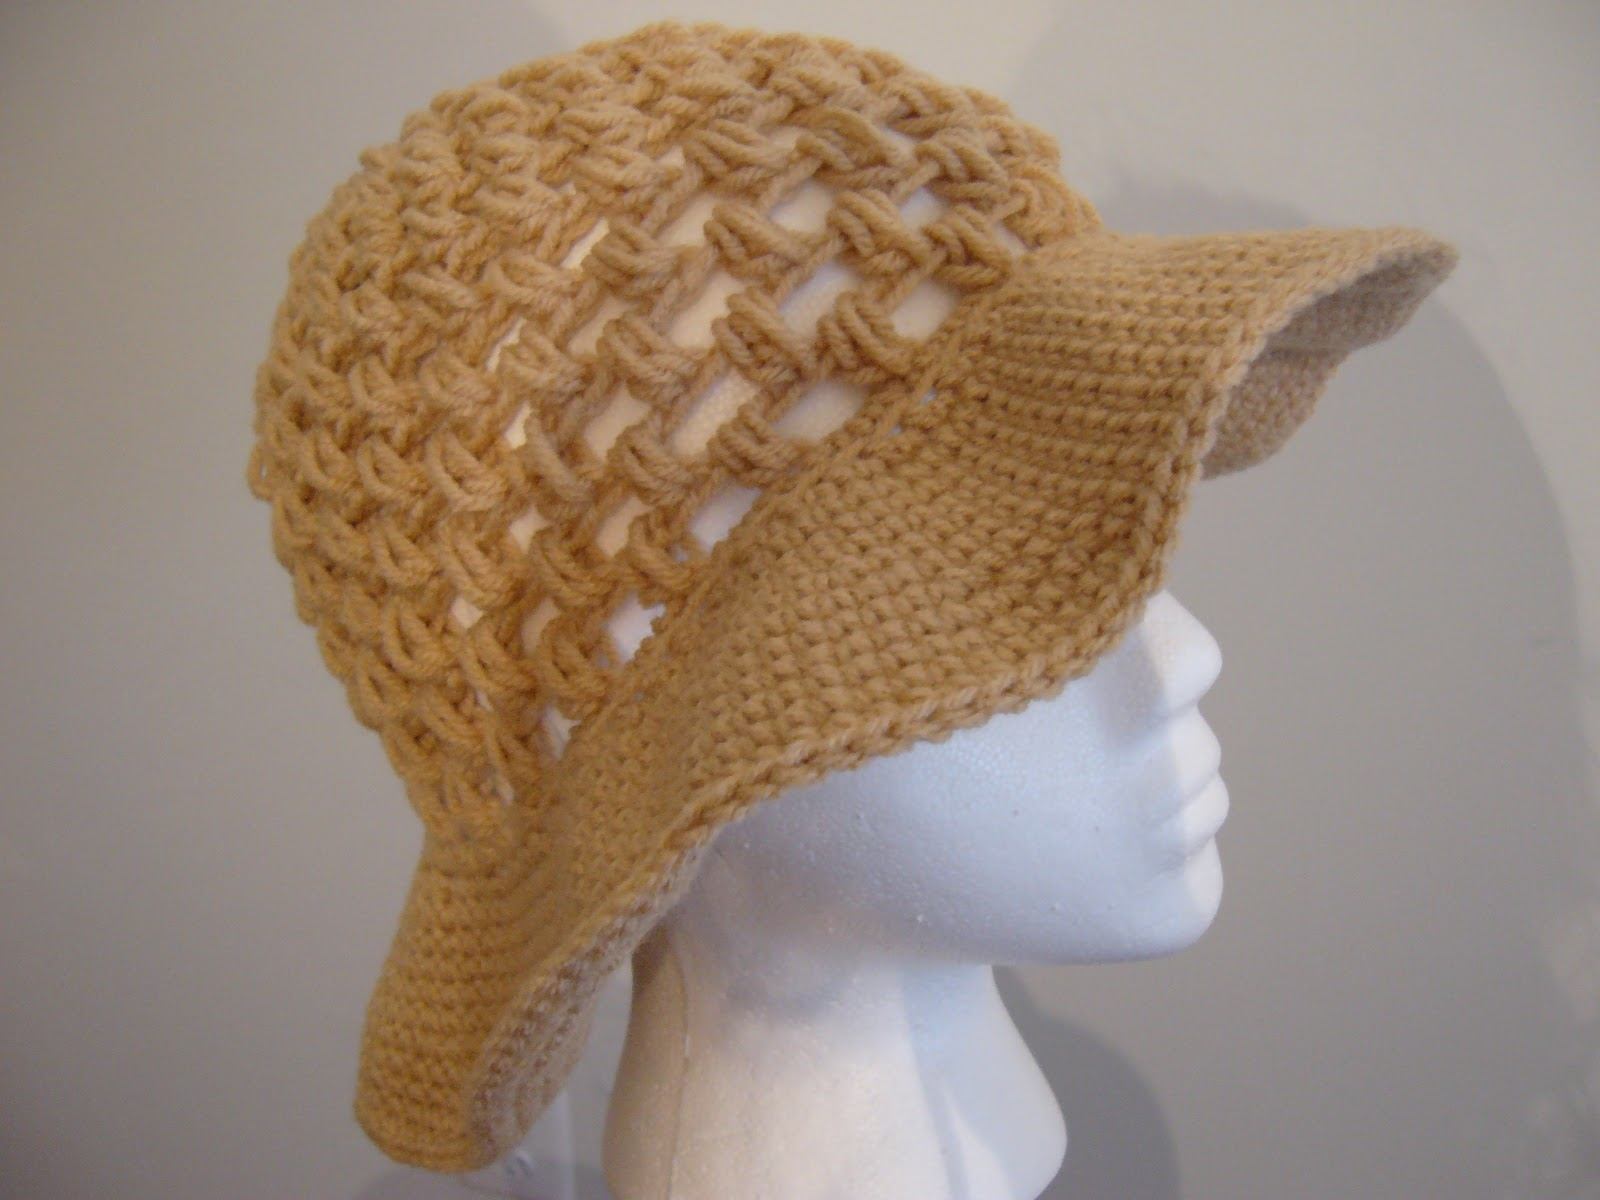 Crocheting A Hat : CROCHET FLOPPY HAT PATTERN ? Patterns